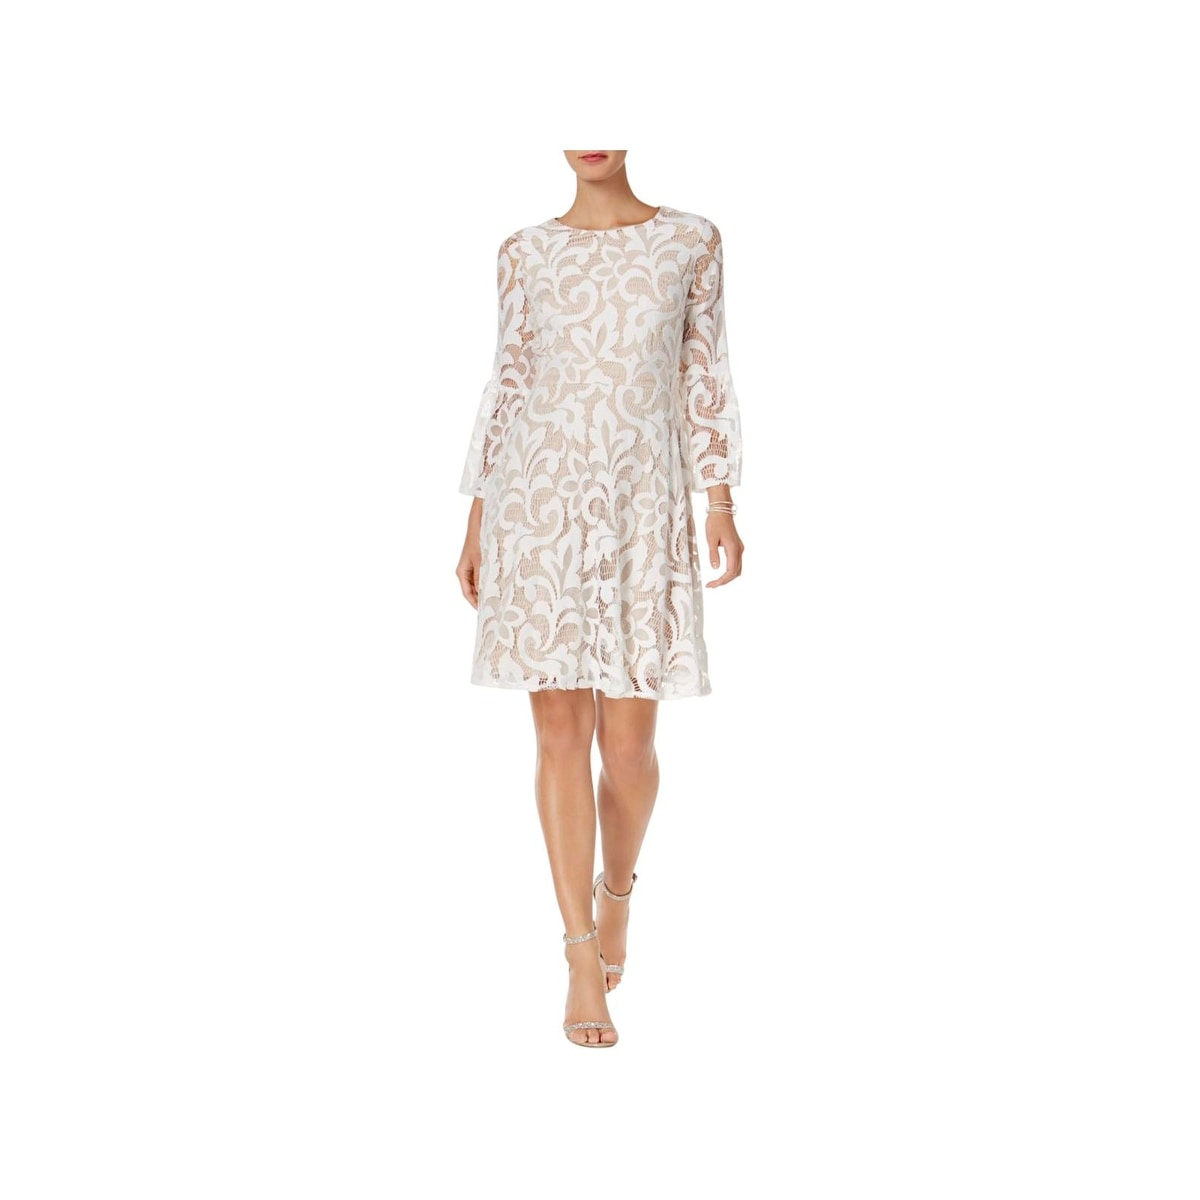 a749ec16 Jessica Howard Petites | Find Great Women's Clothing Deals Shopping at  Overstock